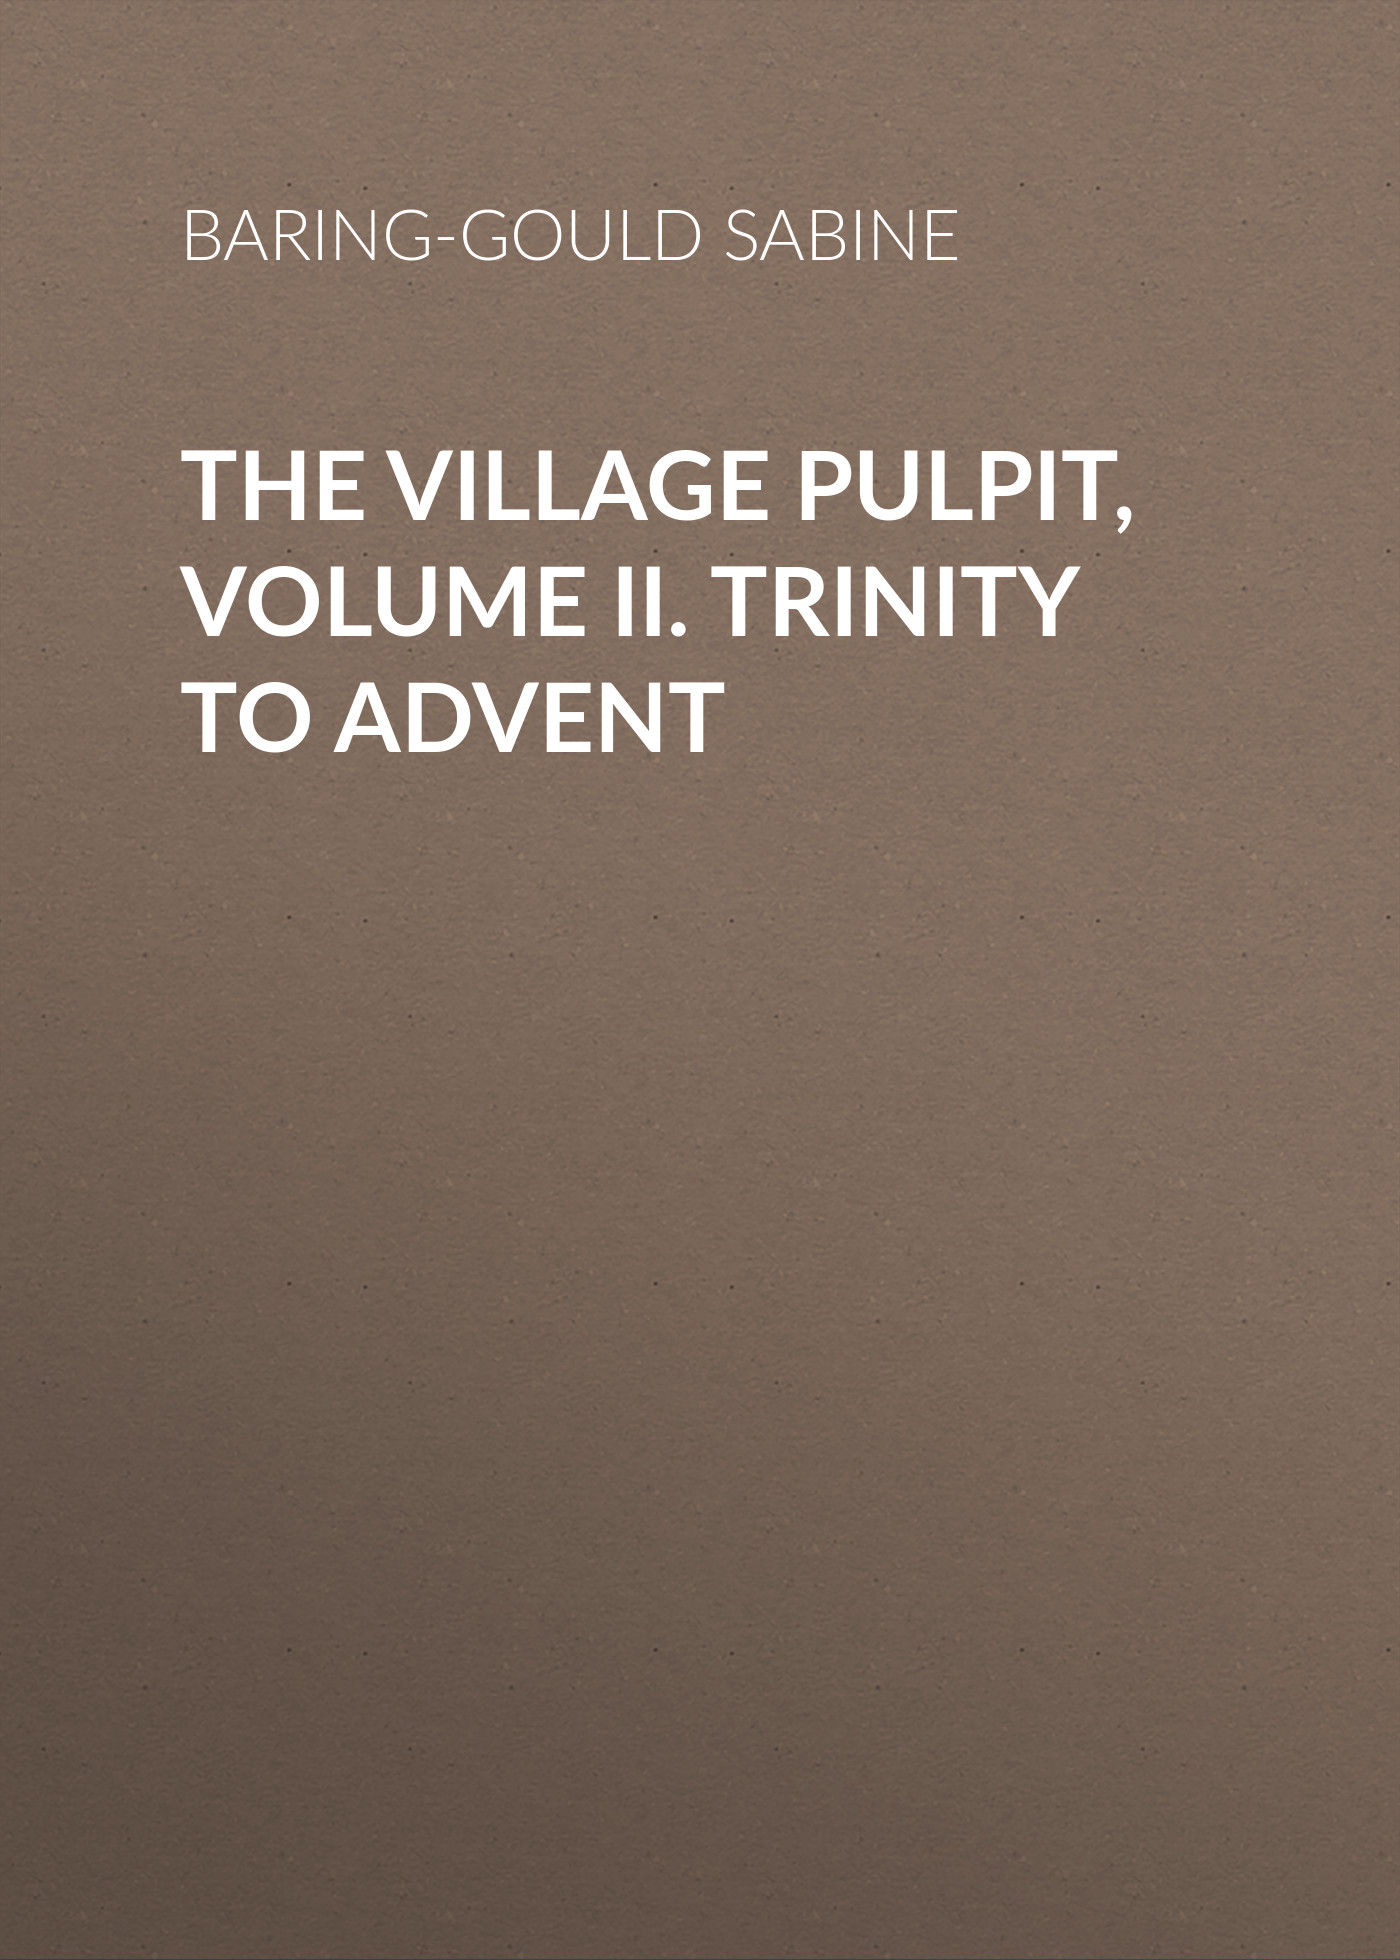 Baring-Gould Sabine The Village Pulpit, Volume II. Trinity to Advent baring gould sabine freaks of fanaticism and other strange events